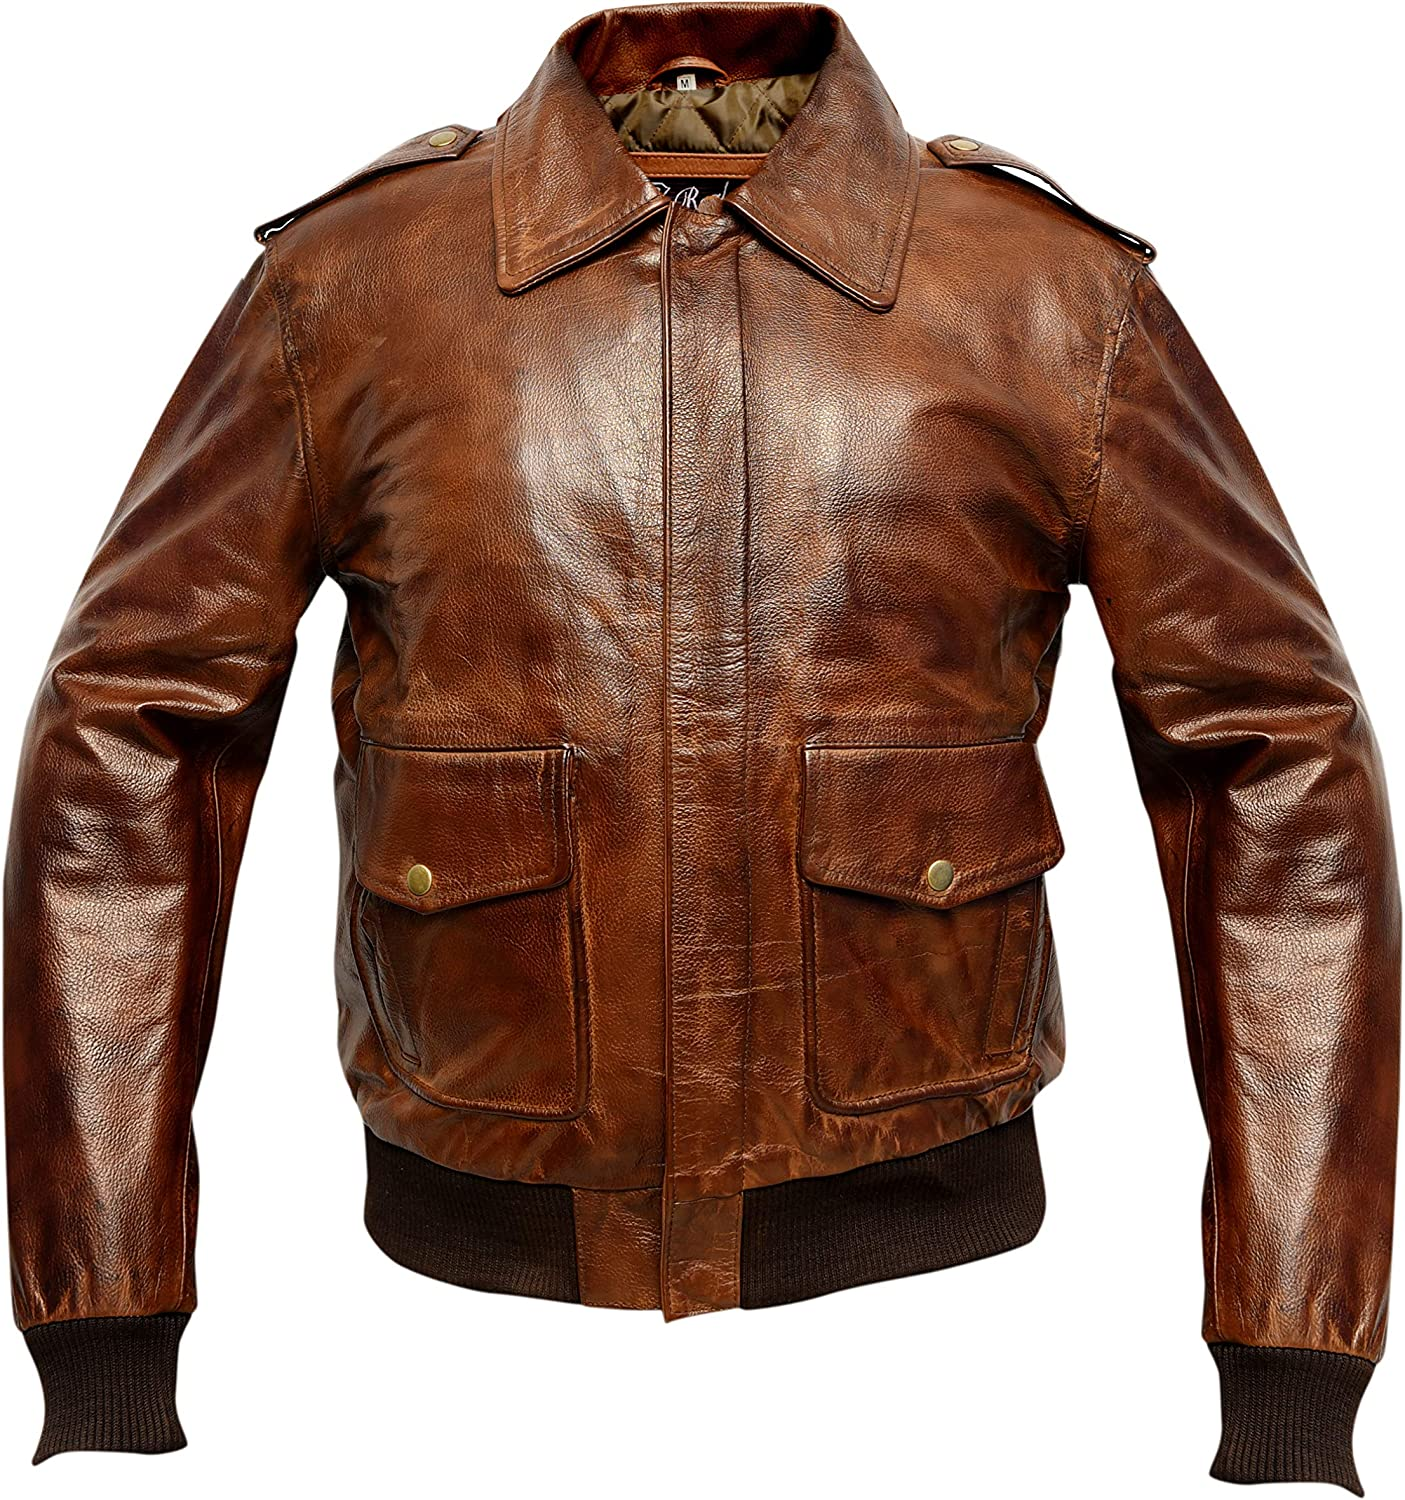 A2 Waxed Distressed Brown Real Cowhide Leather Bomber Flight Jacket